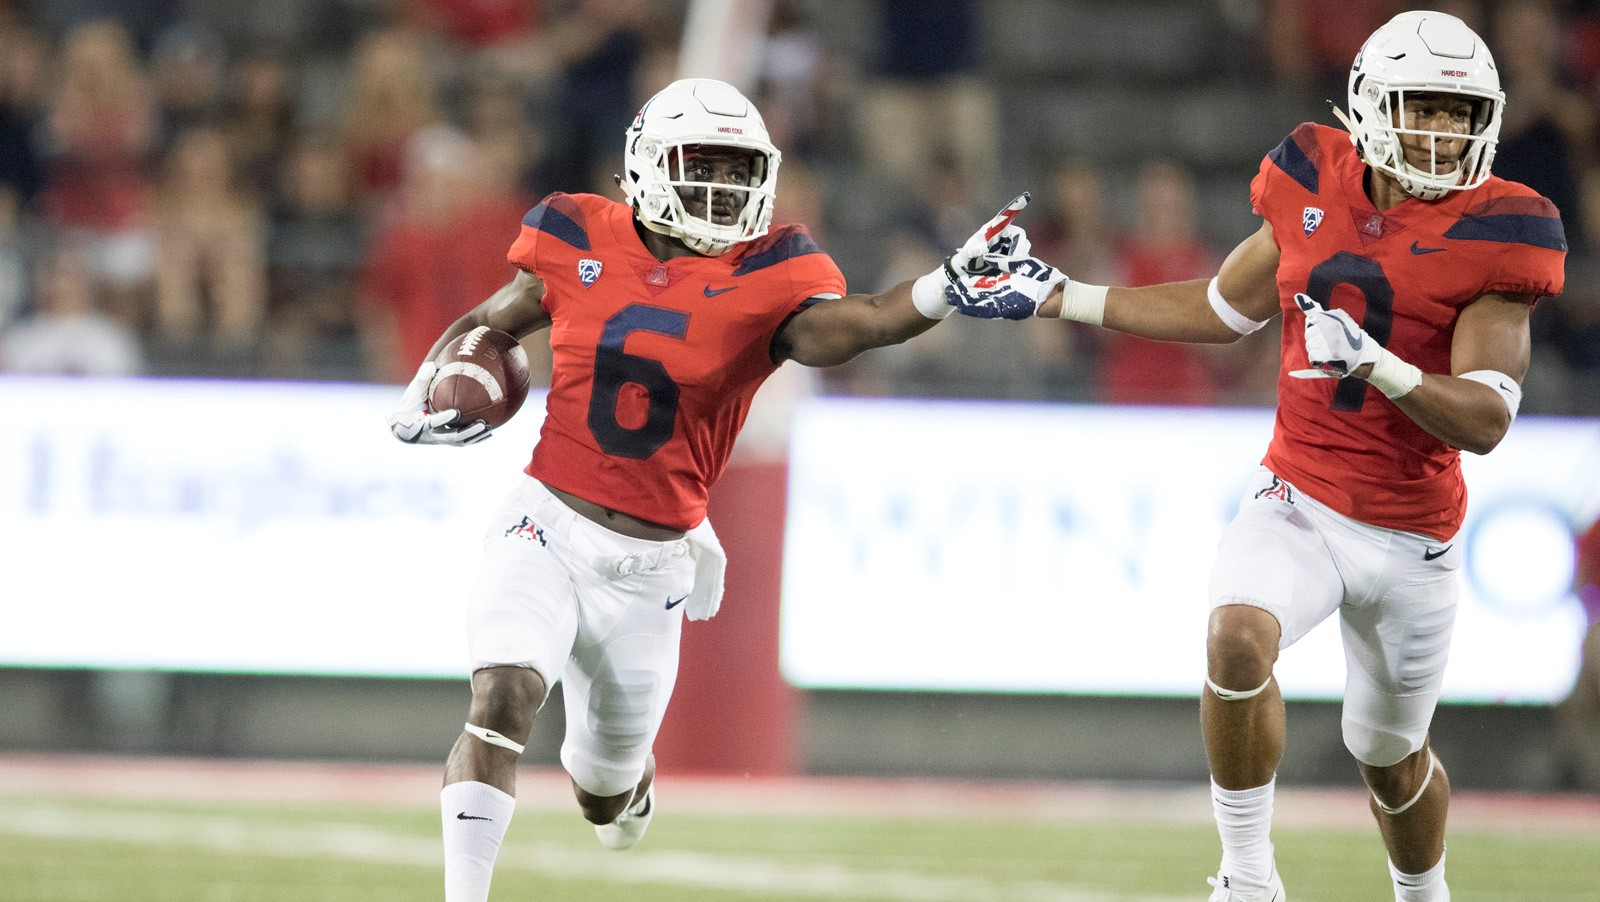 Uofa Football Score >> Shun Brown Football University Of Arizona Athletics